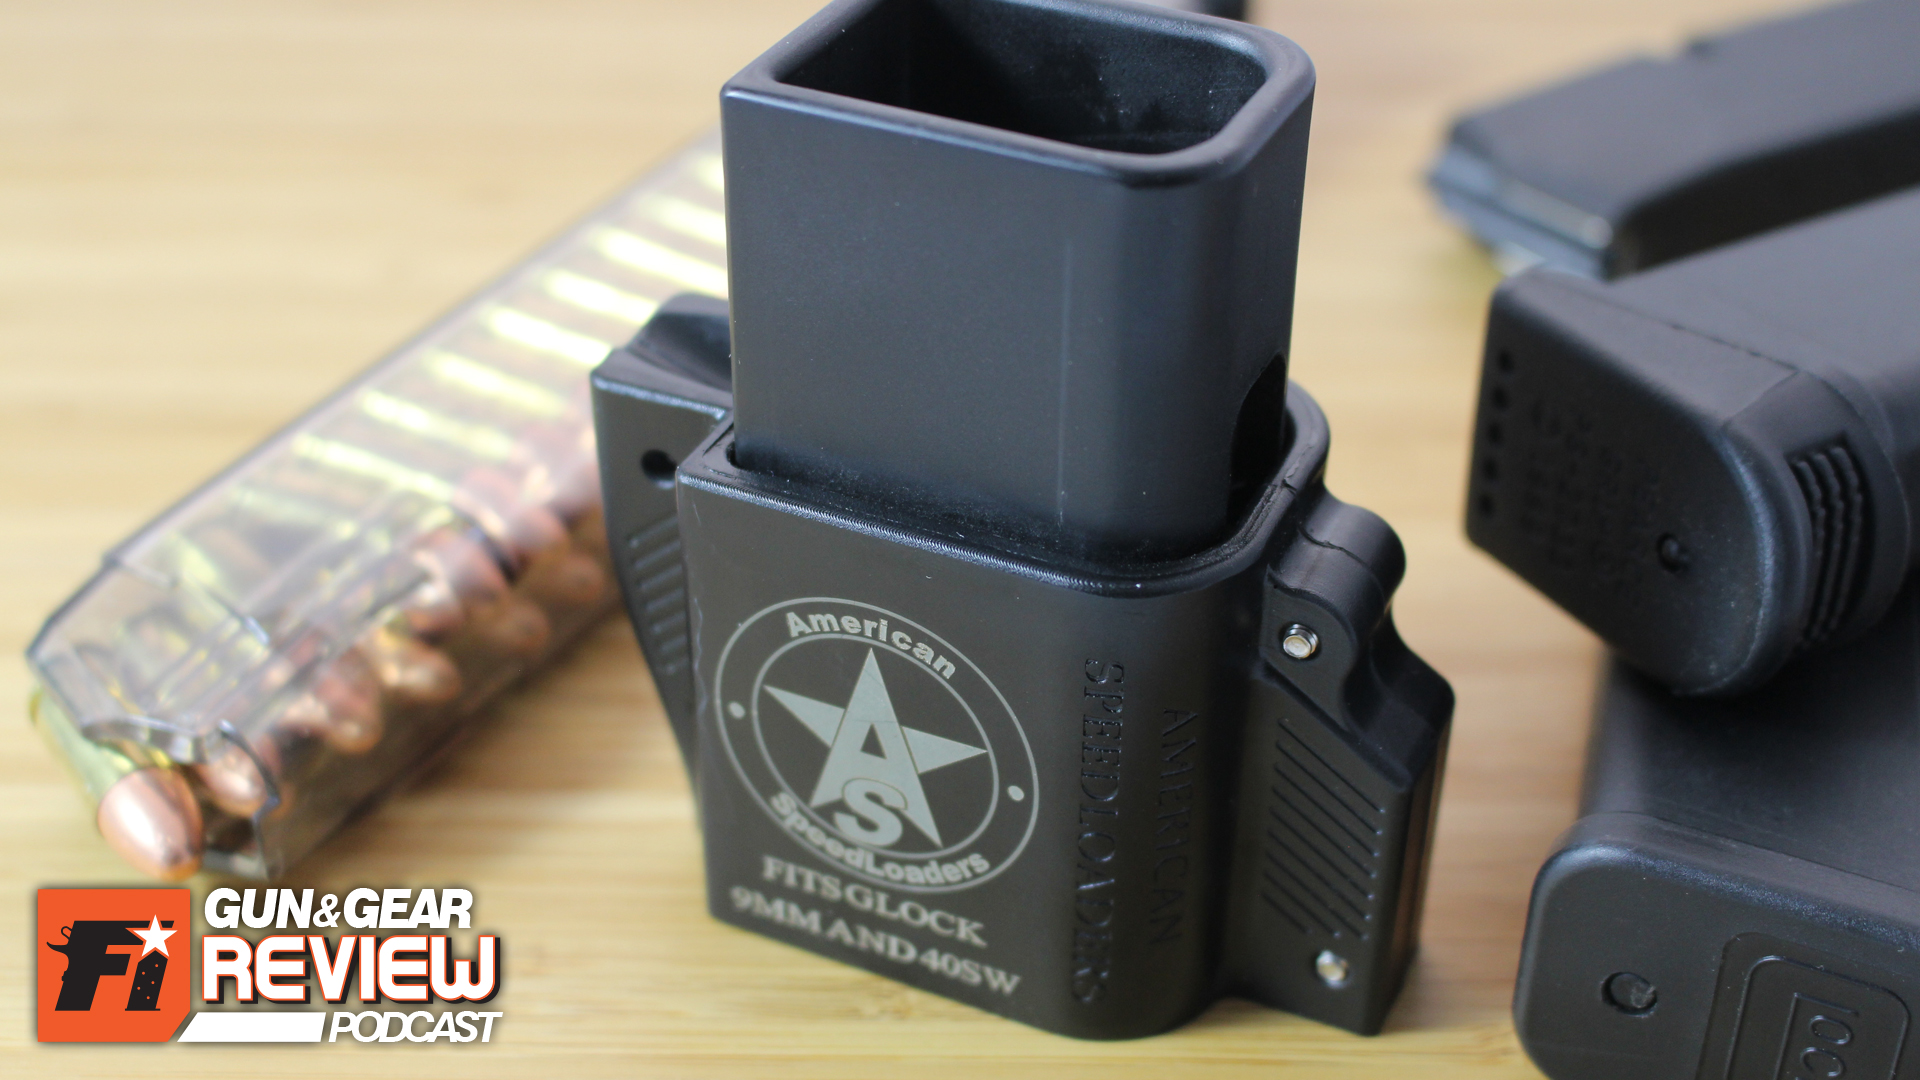 For a Glock owner, having a Speedloader that is faster than traditional loading can save time and the nerve endings in your fingers.